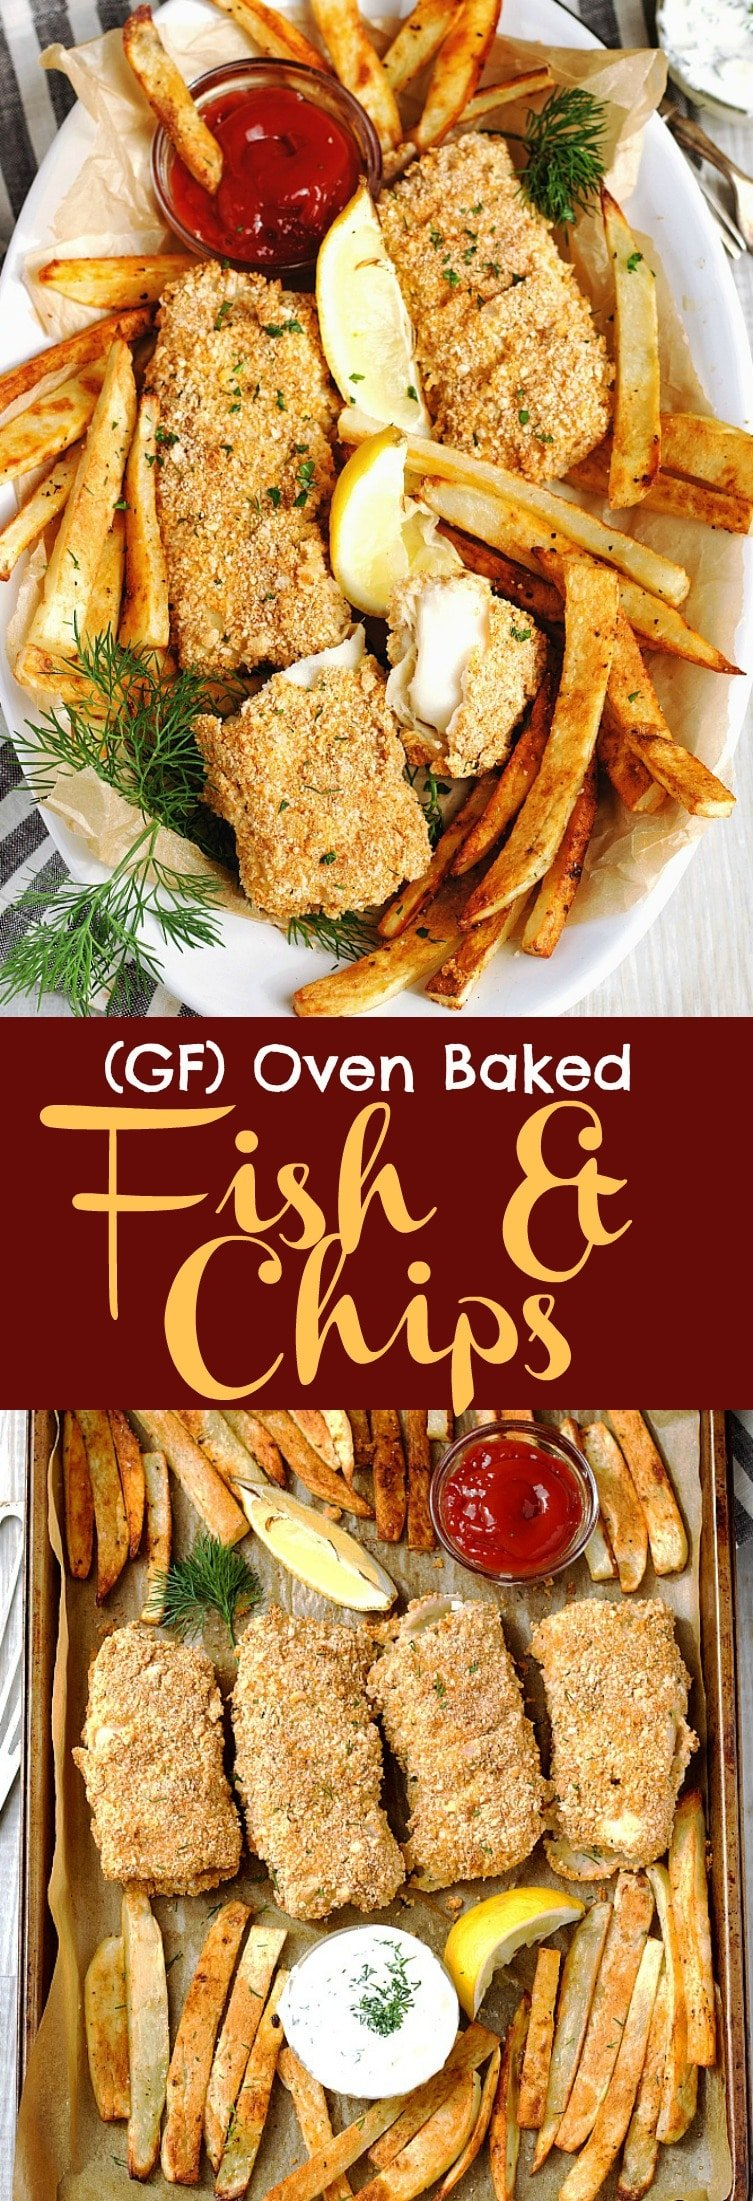 Gluten-Free Oven Baked Fish & Chips